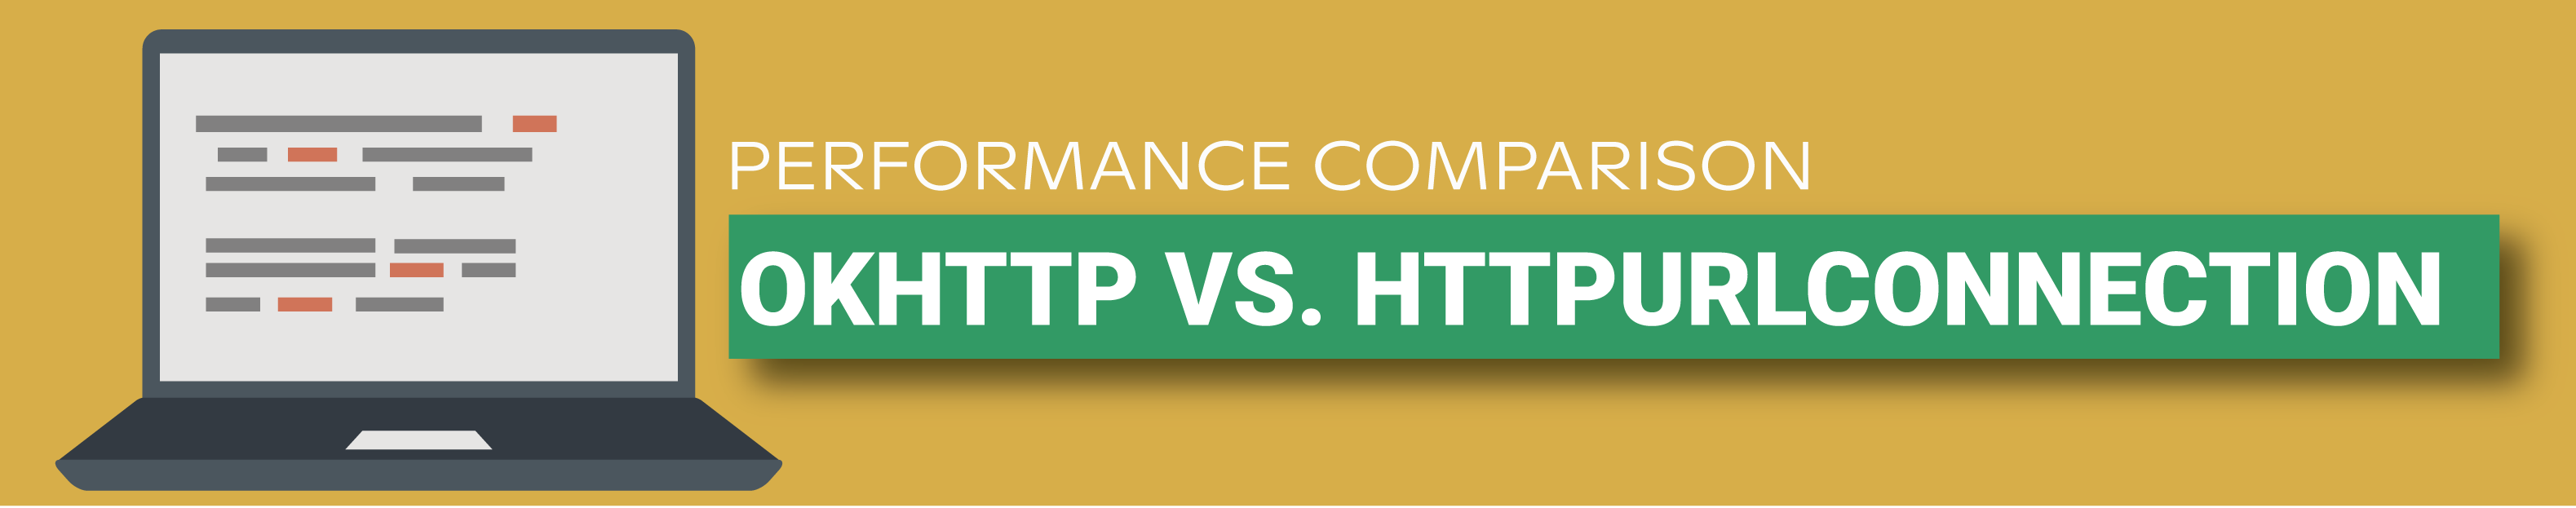 Performance: OKHttp vs. HttpURLConnection